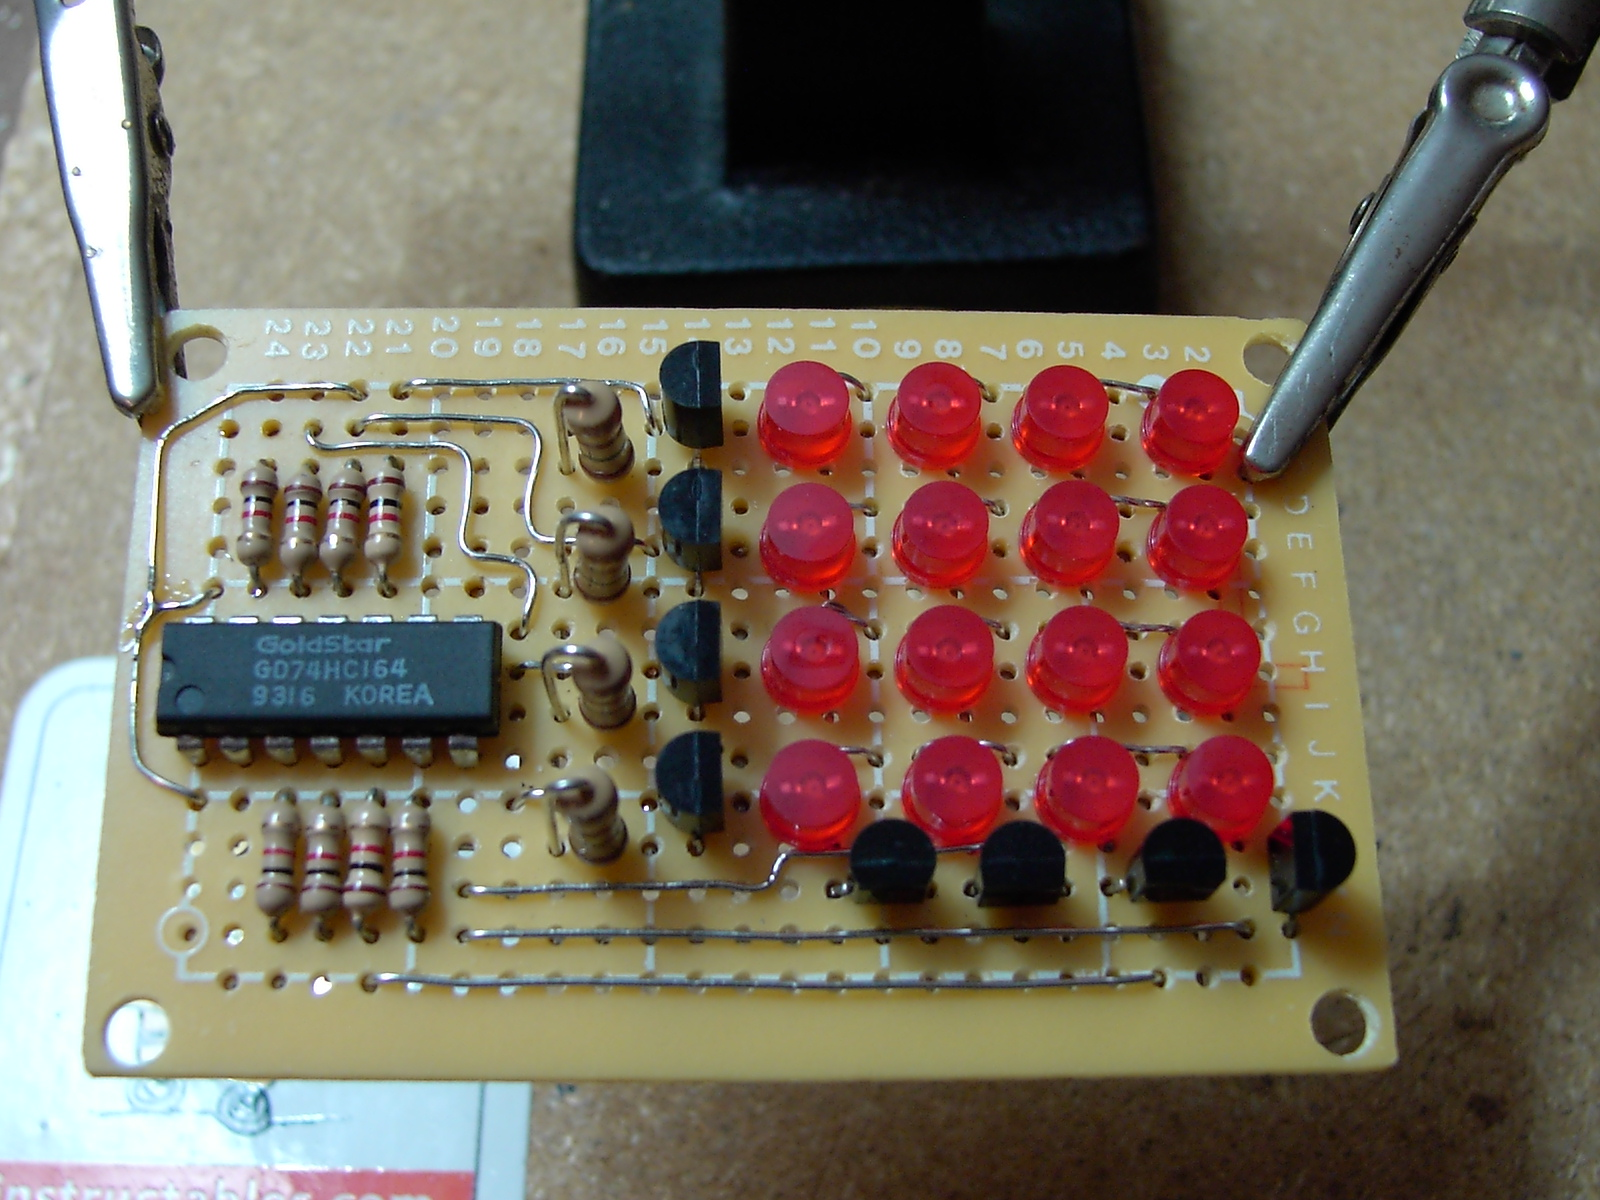 Picture of Project 3[pt 1]: '2 Wire' 4x4 Led Matrix Display